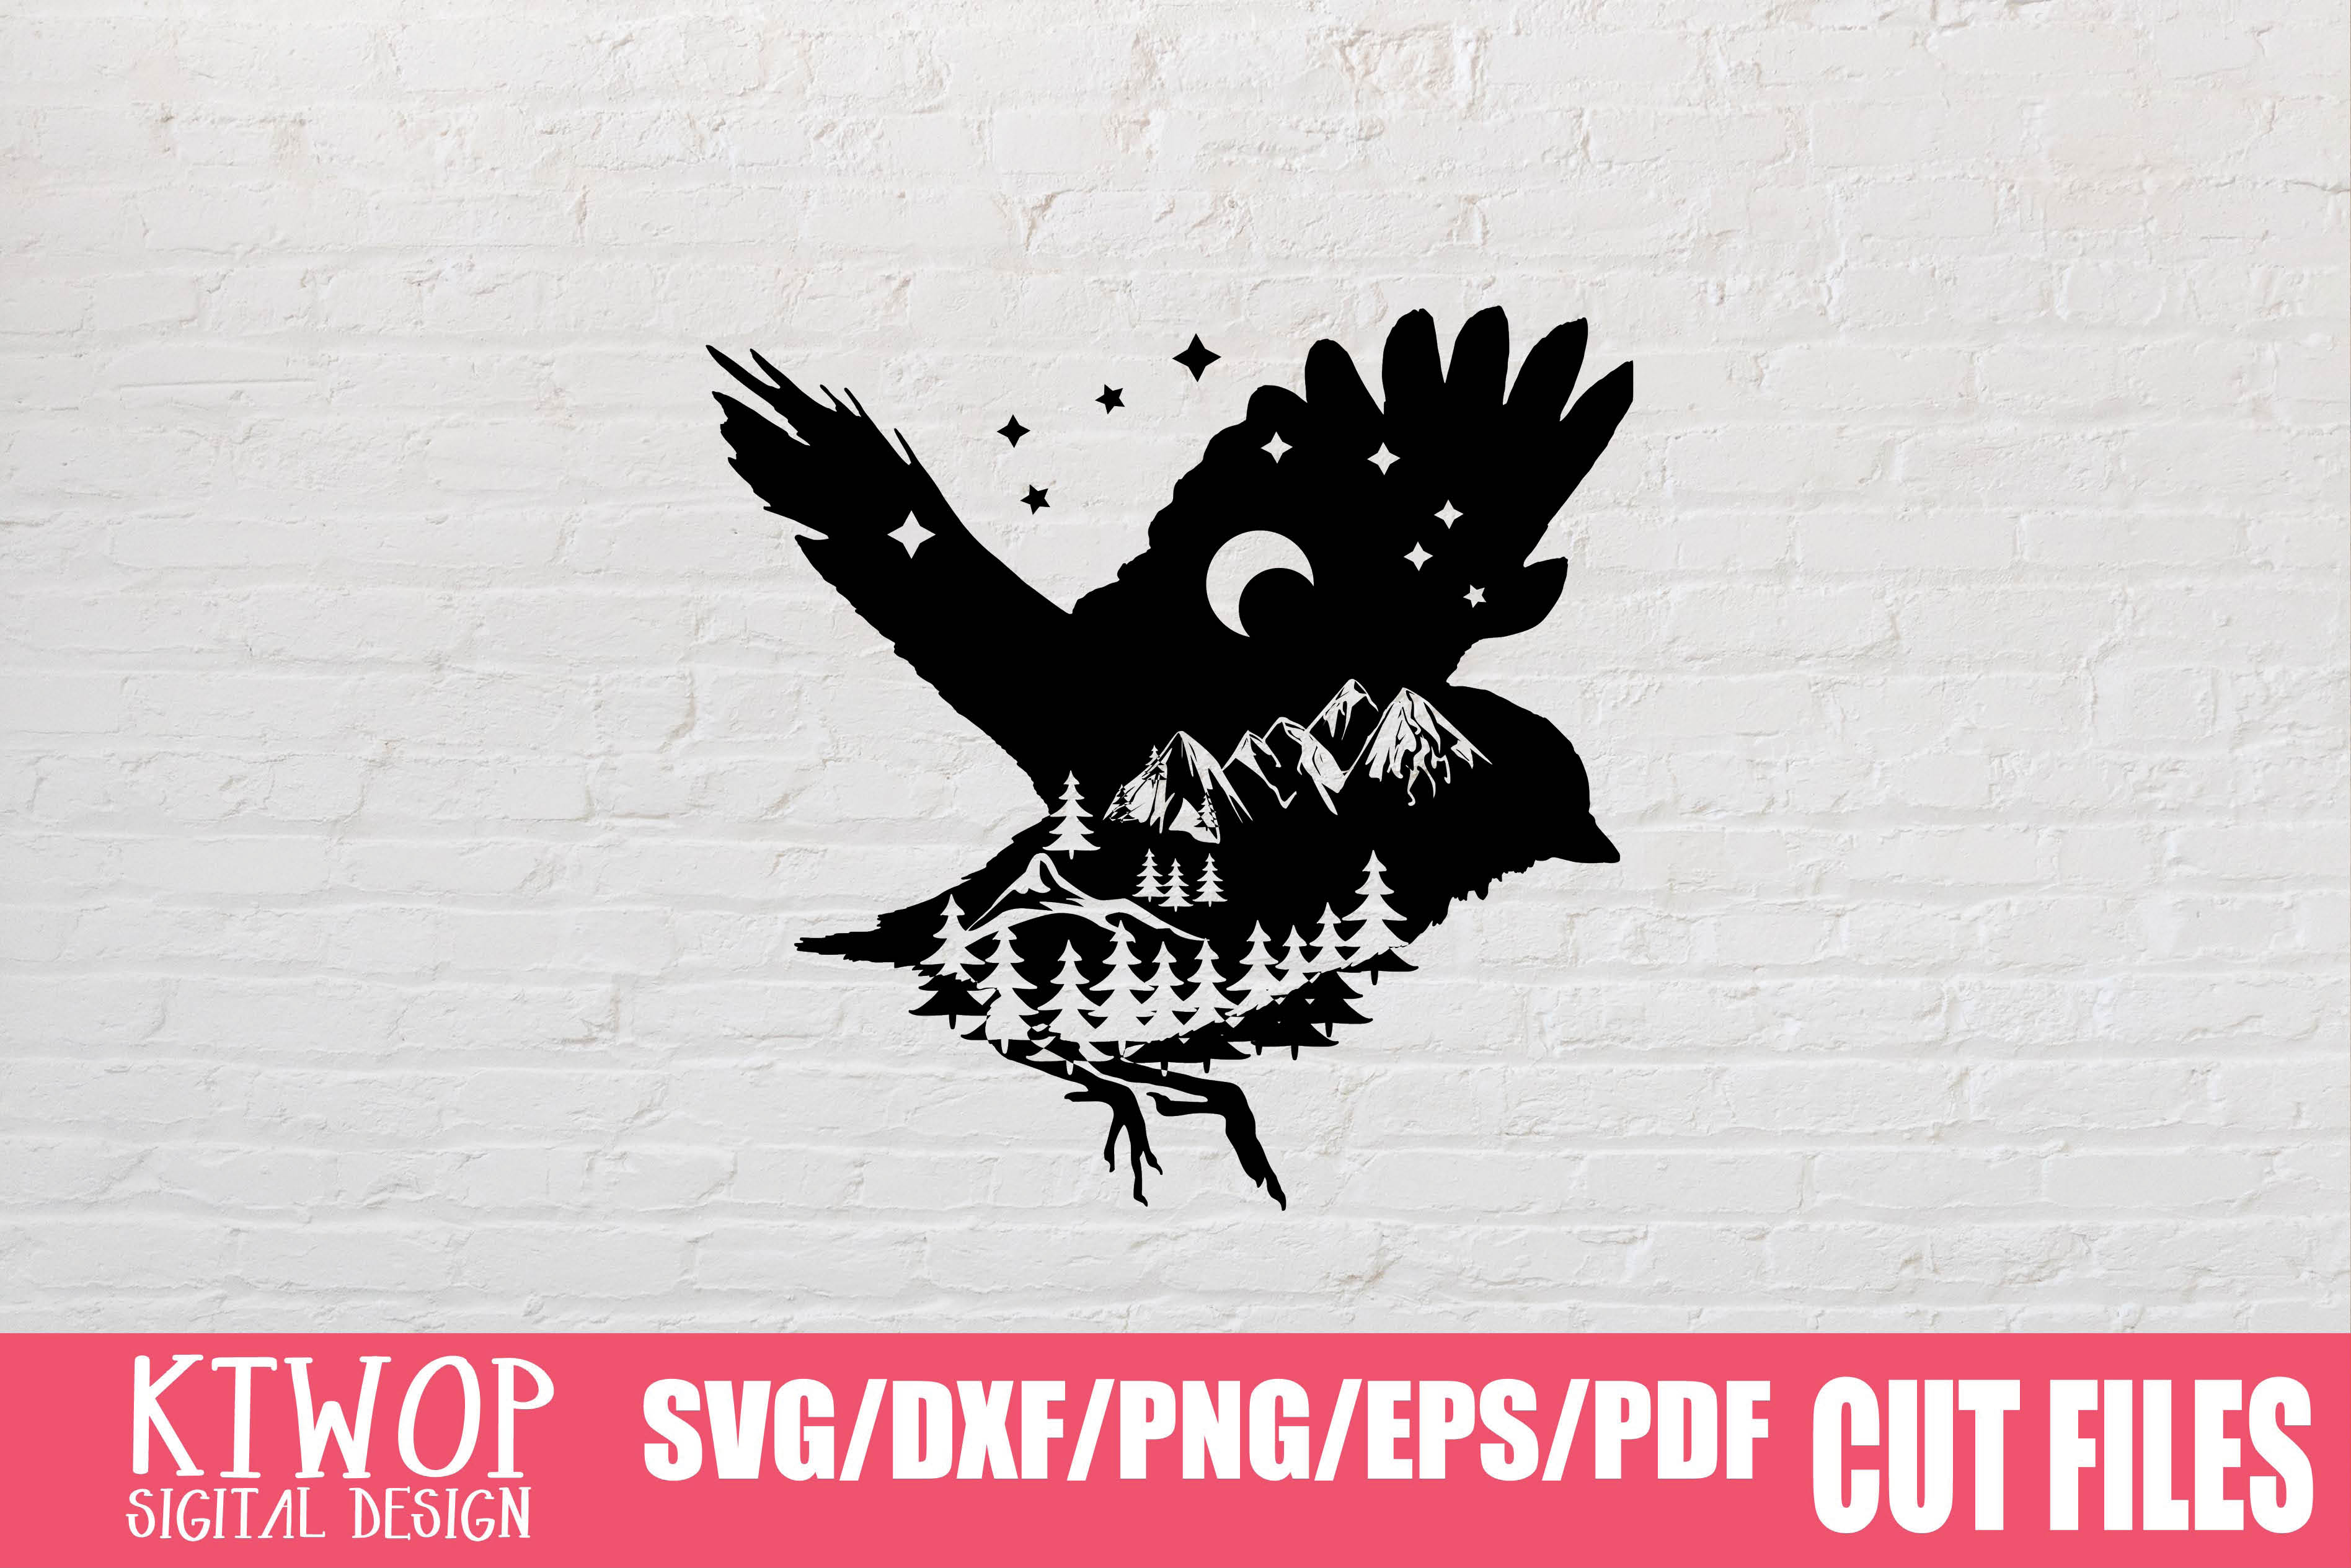 Download Free Little Bird Adventure Graphic By Ktwop Creative Fabrica for Cricut Explore, Silhouette and other cutting machines.